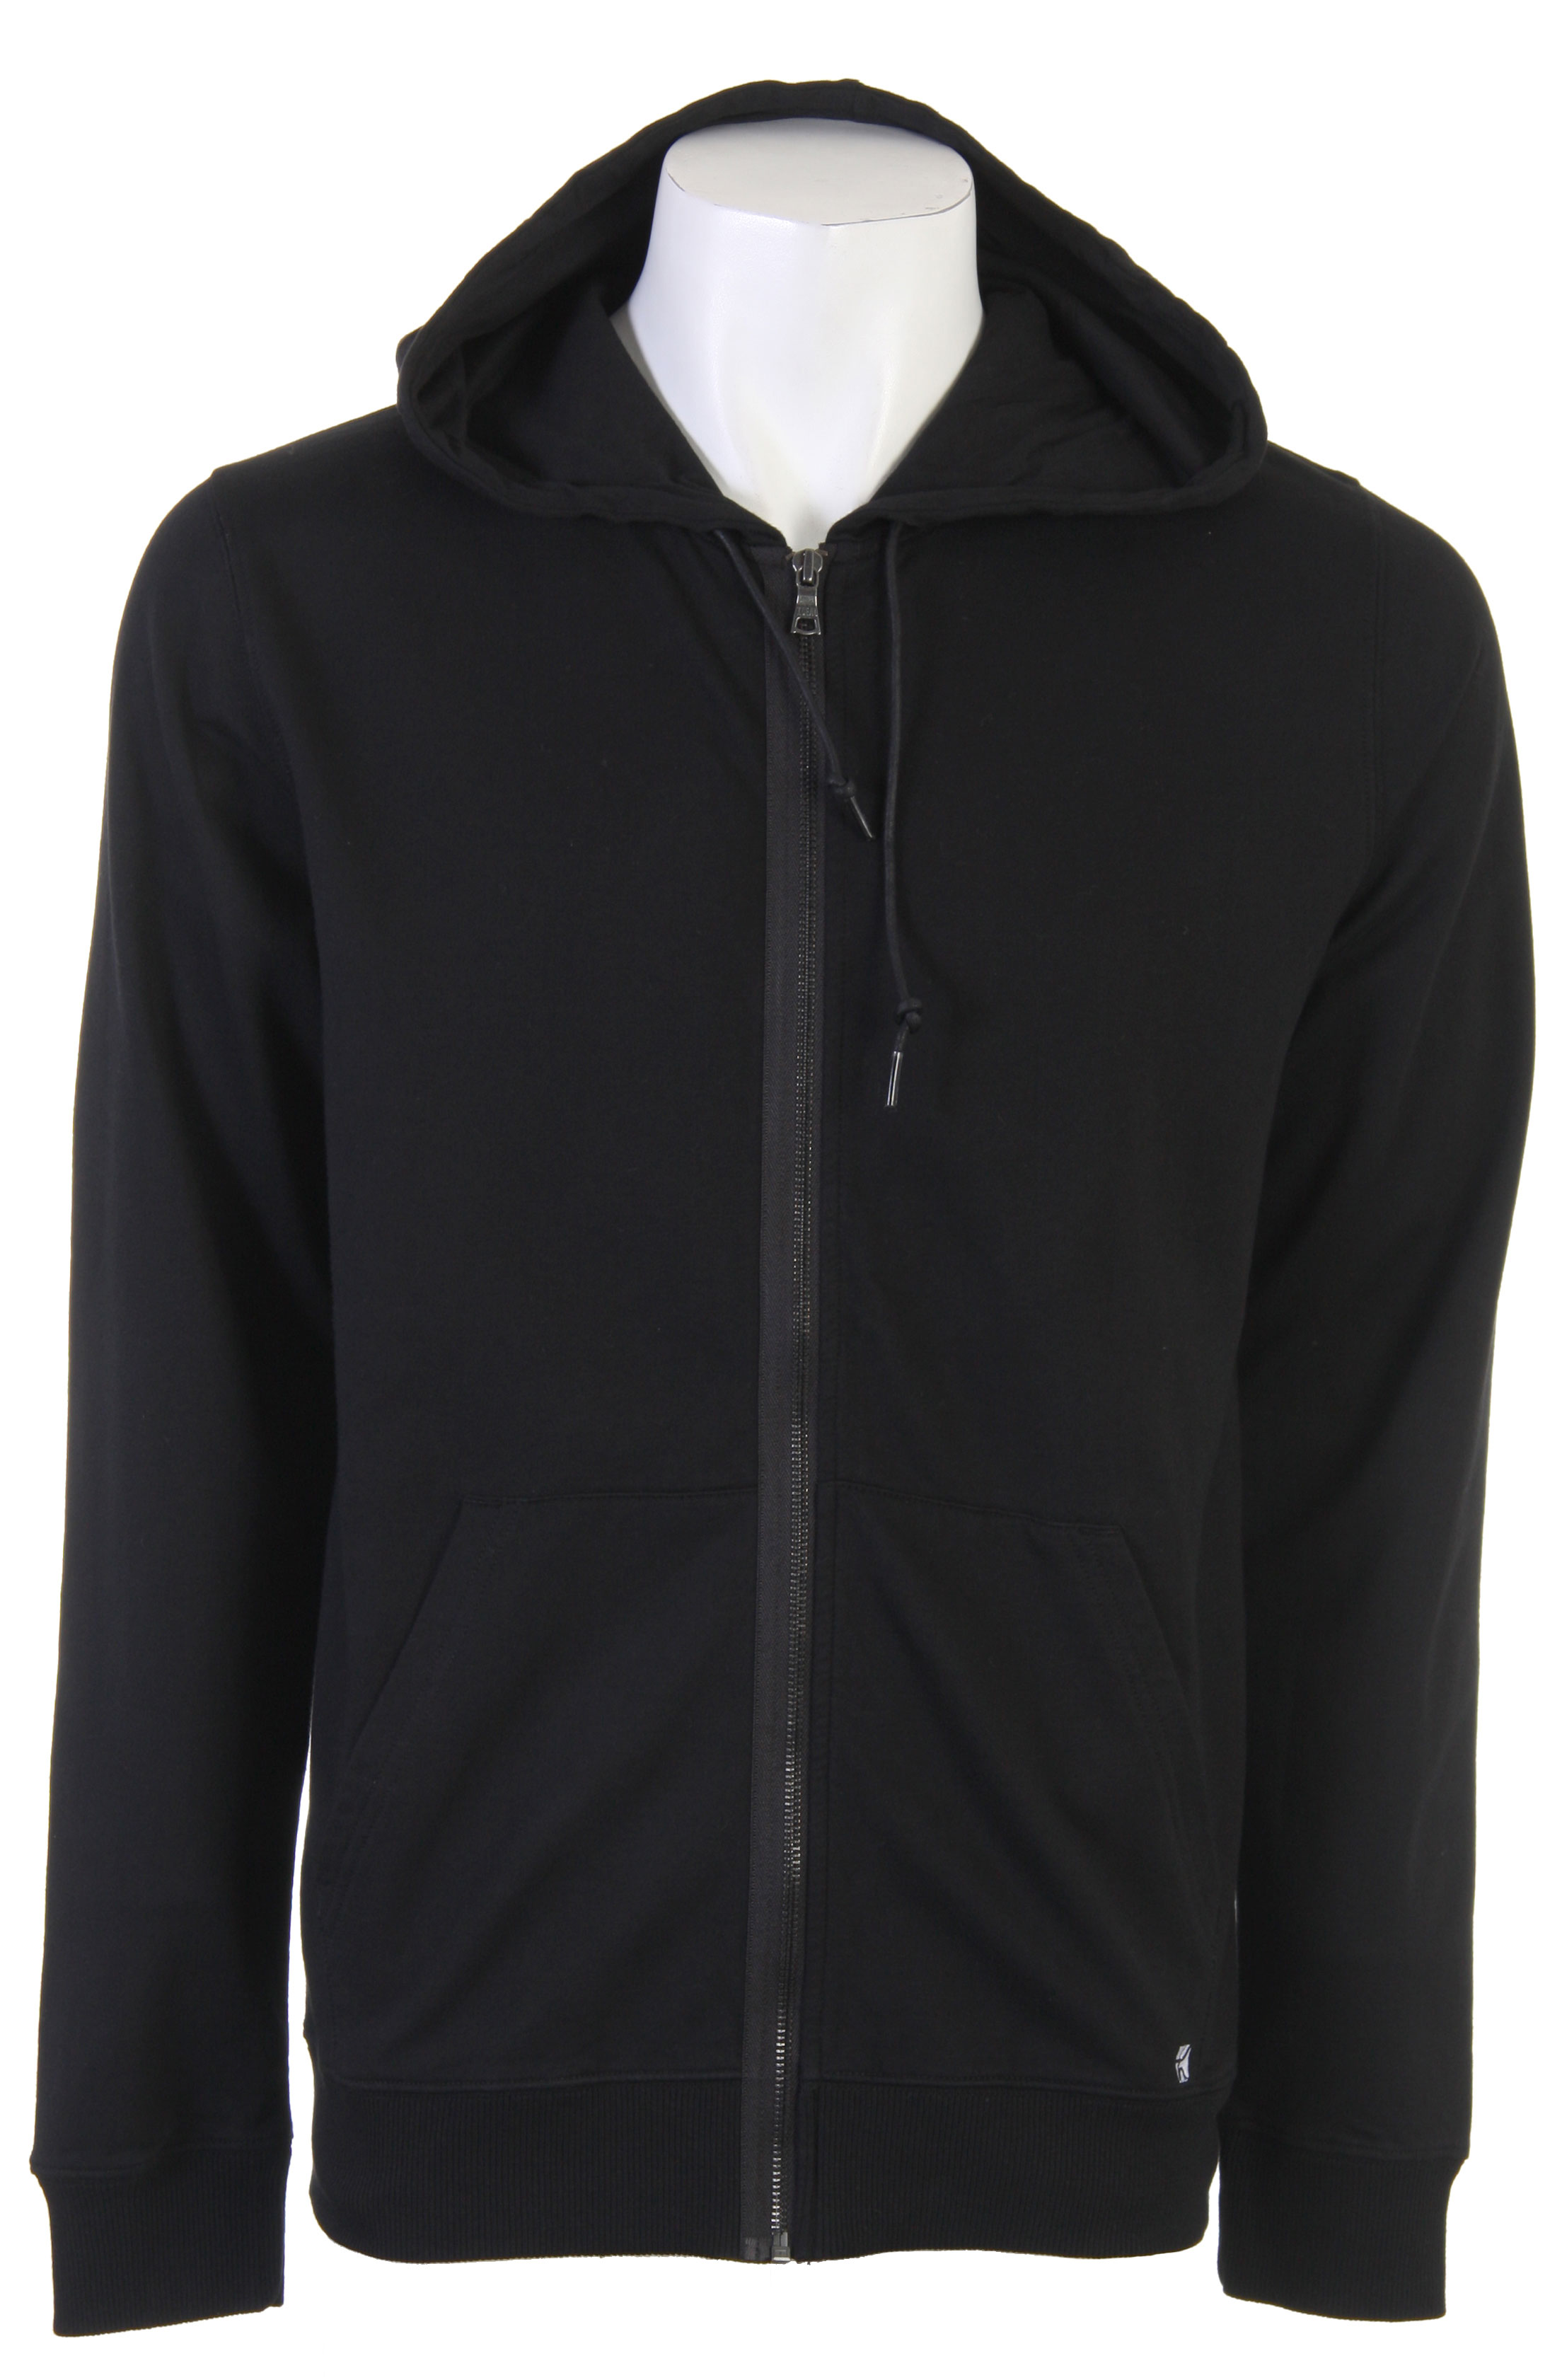 Ski Your all set for a fun filled ski weekend with your new Holden Script Zip Hoodie. This mid-weight fleece with heavy garment wash for soft vintage feel is the perfect fit. Whether your on the slopes or in relaxing in the lounge this Hoodie will keep you warm, and comfortable being made of 80/20 cotton/poly. Your hands won't freeze with the kangaroo type pockets, waxed cotton drawcord and felt script logo applique on back. You'll definitely be the talk of the slopes!Key Features of the Holden Script Zip Hoodie: Mid-weight fleece with heavy garment wash for soft vintage feel Felt script logo applique on back Waxed cotton drawcord detail 80/20 Cotton Poly - $44.95